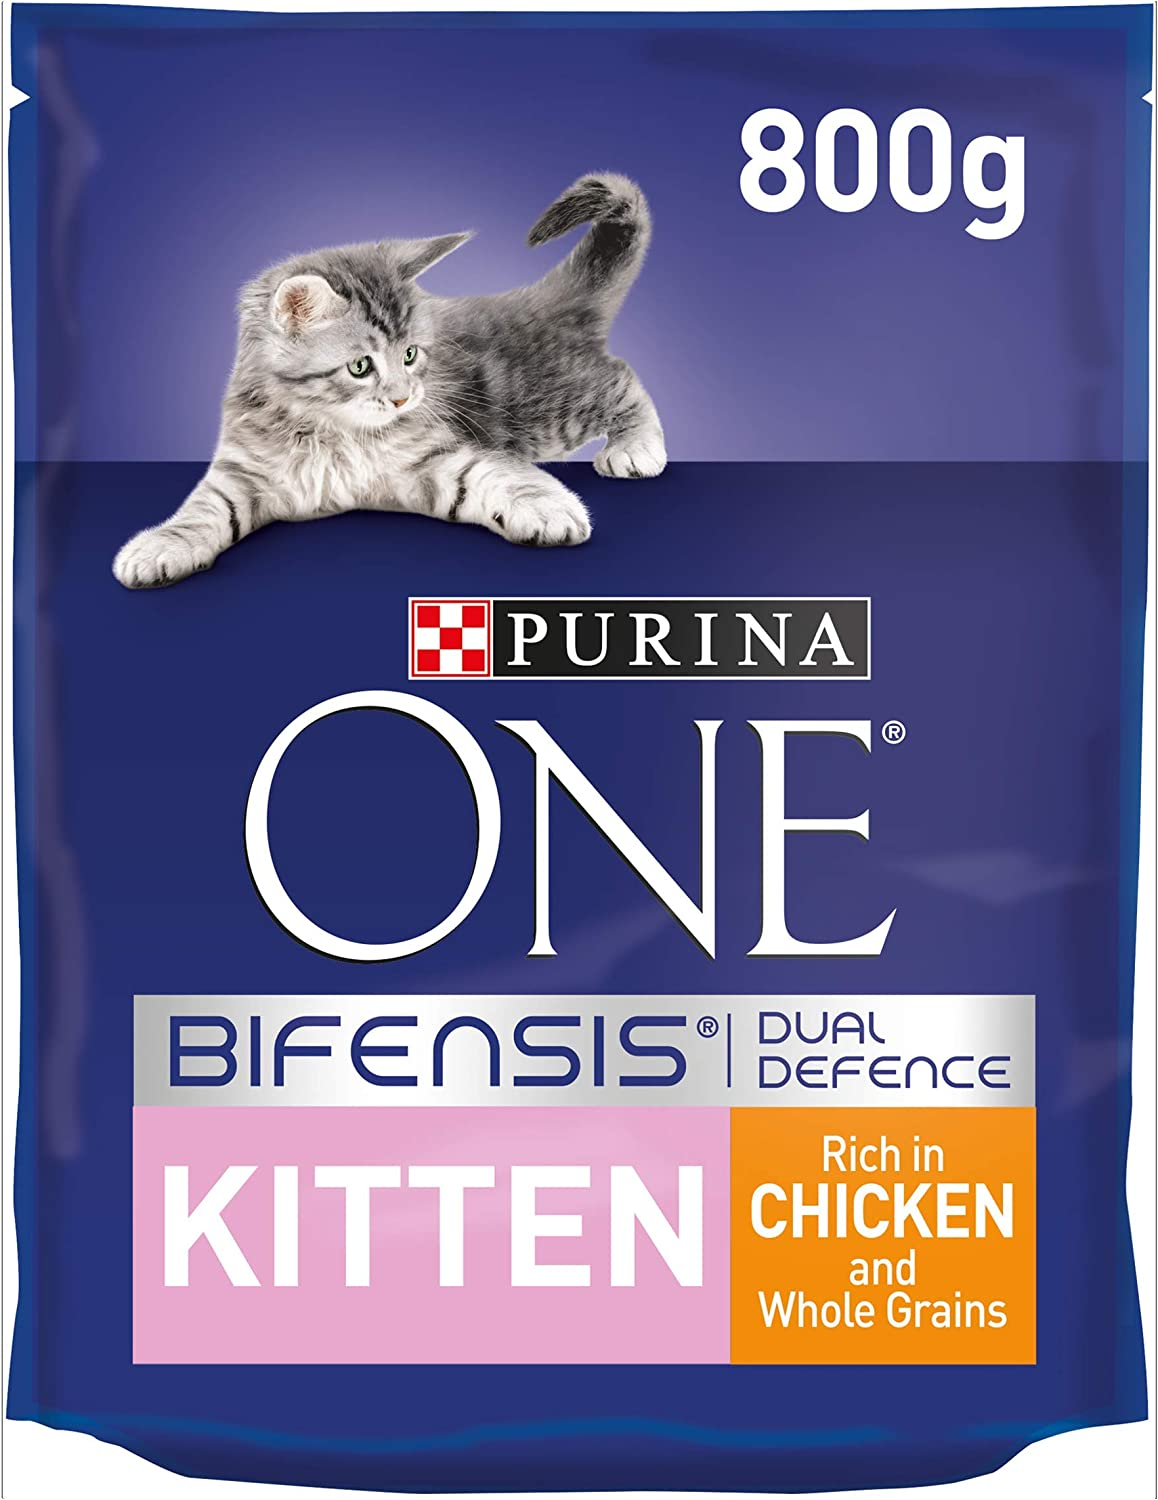 Purina One Kitten Complete Dry Cat Food Chicken 800g Amazon Co Uk Pet Supplies